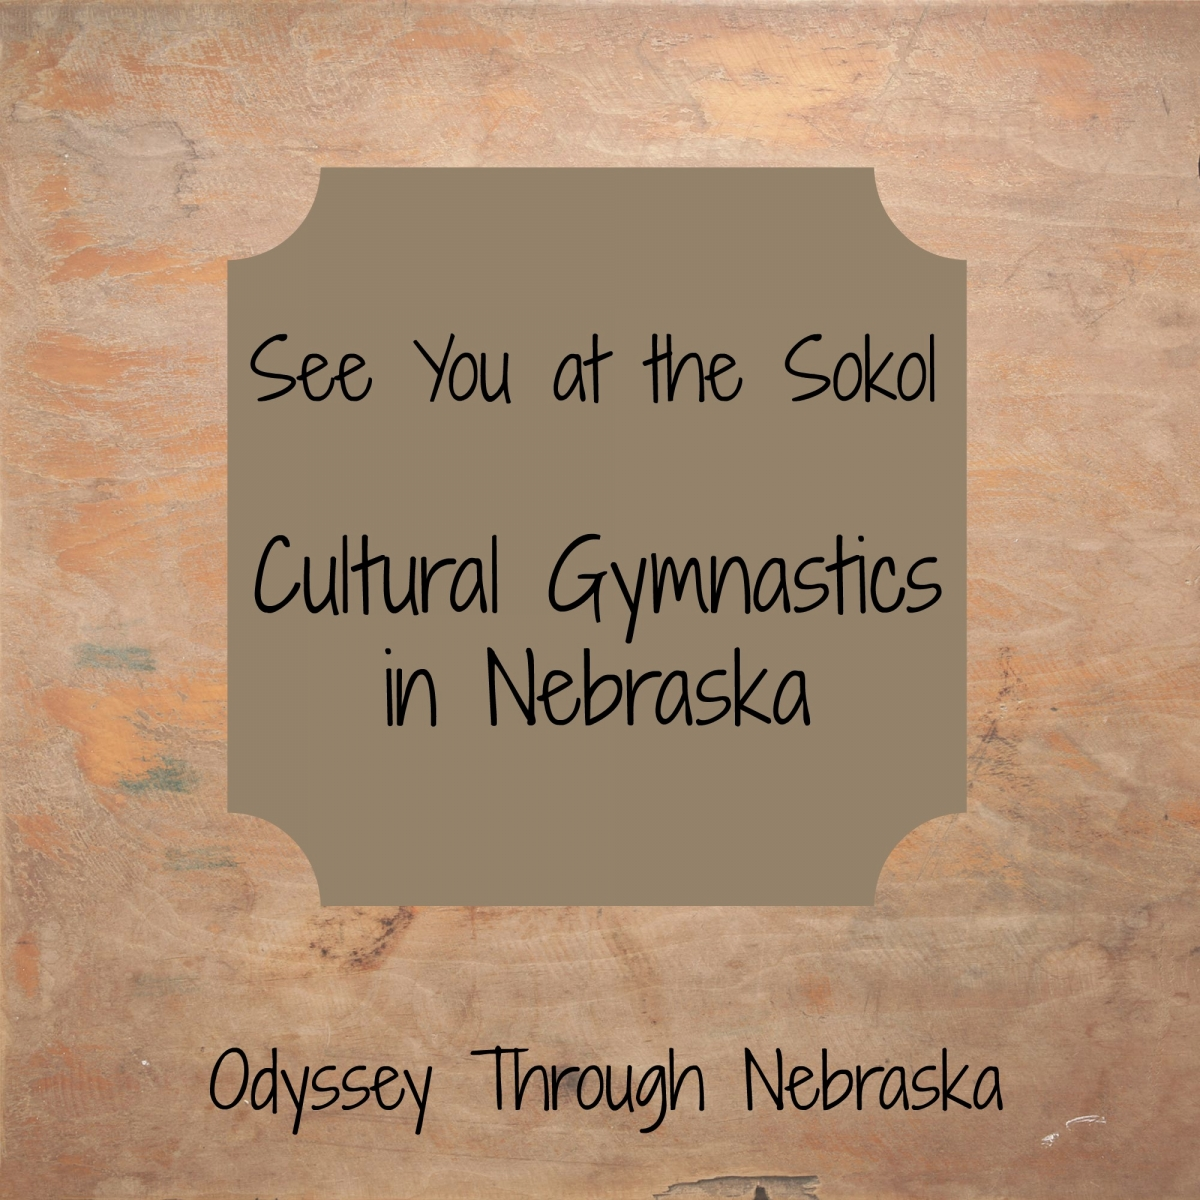 Sokol is a Czech tradition that was brought to Nebraska